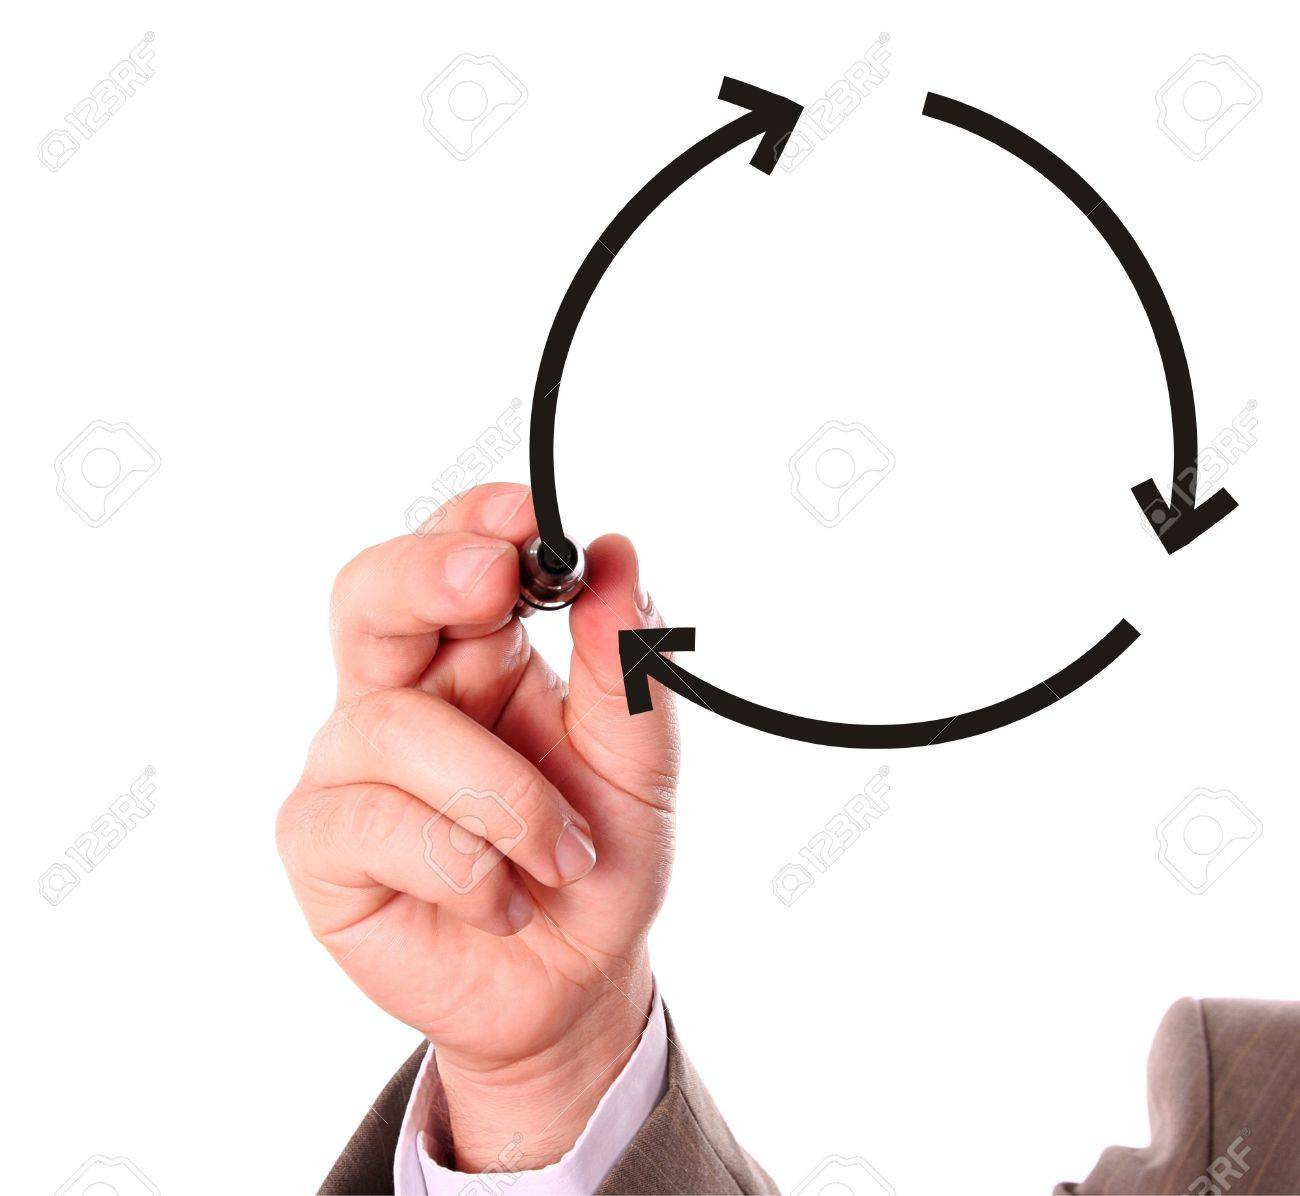 Businessman drawing recycling symbol on the whiteboard Stock Photo - 4235441